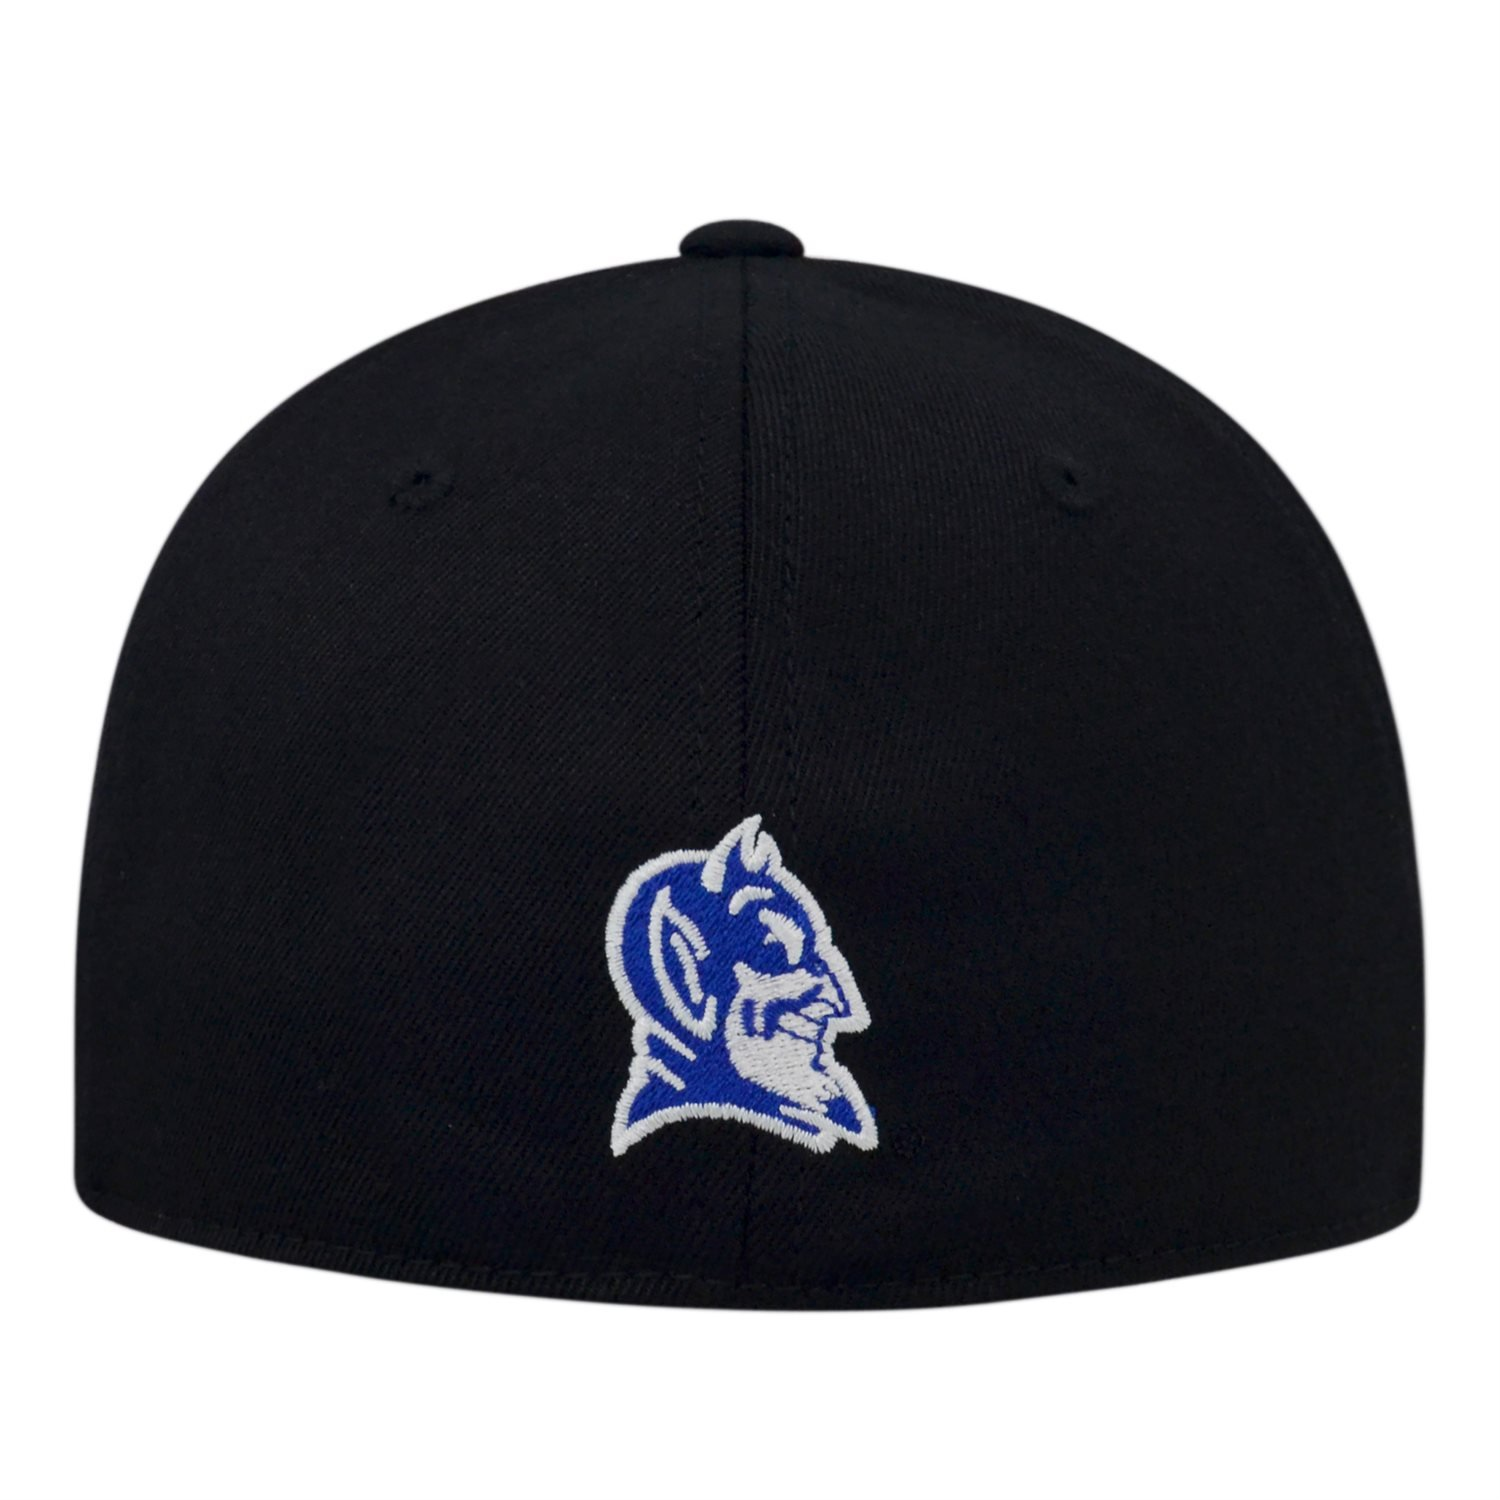 finest selection 3bfc9 d3814 ... official store duke blue devils fitted hats c3327 525e2